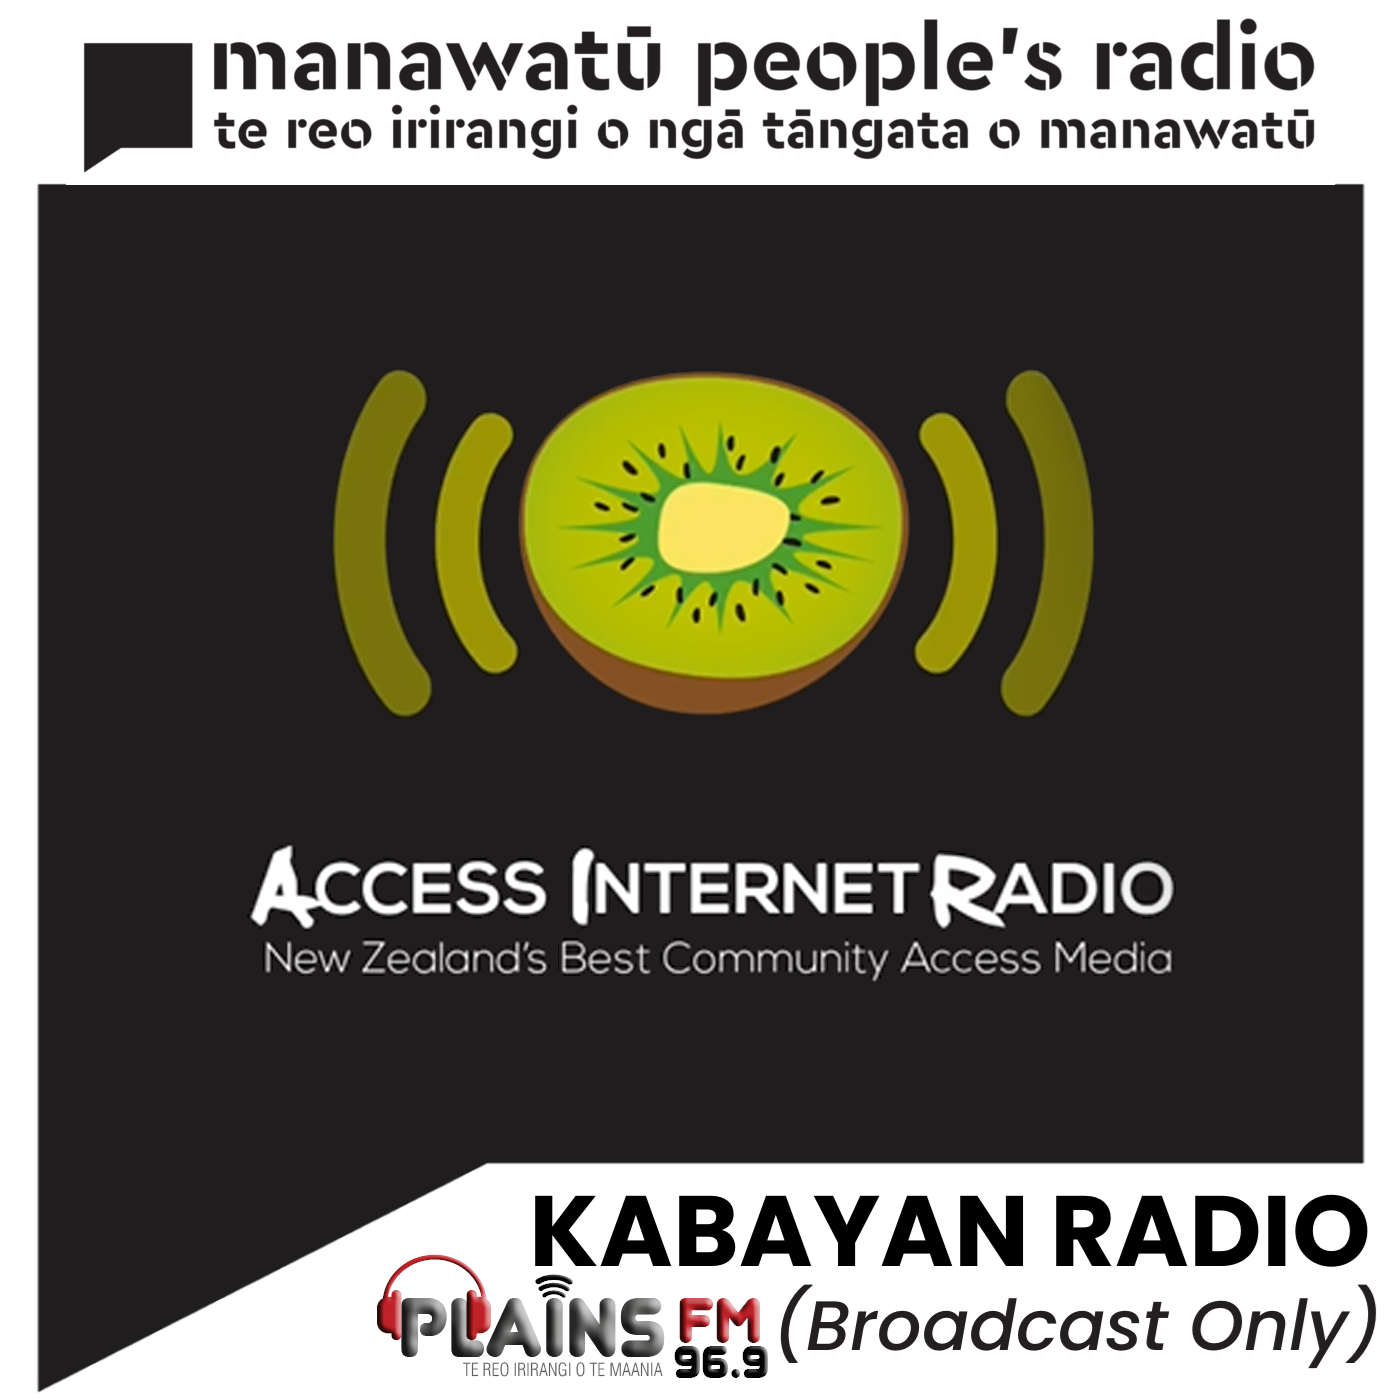 Kabayan Radio (Broadcast Only)